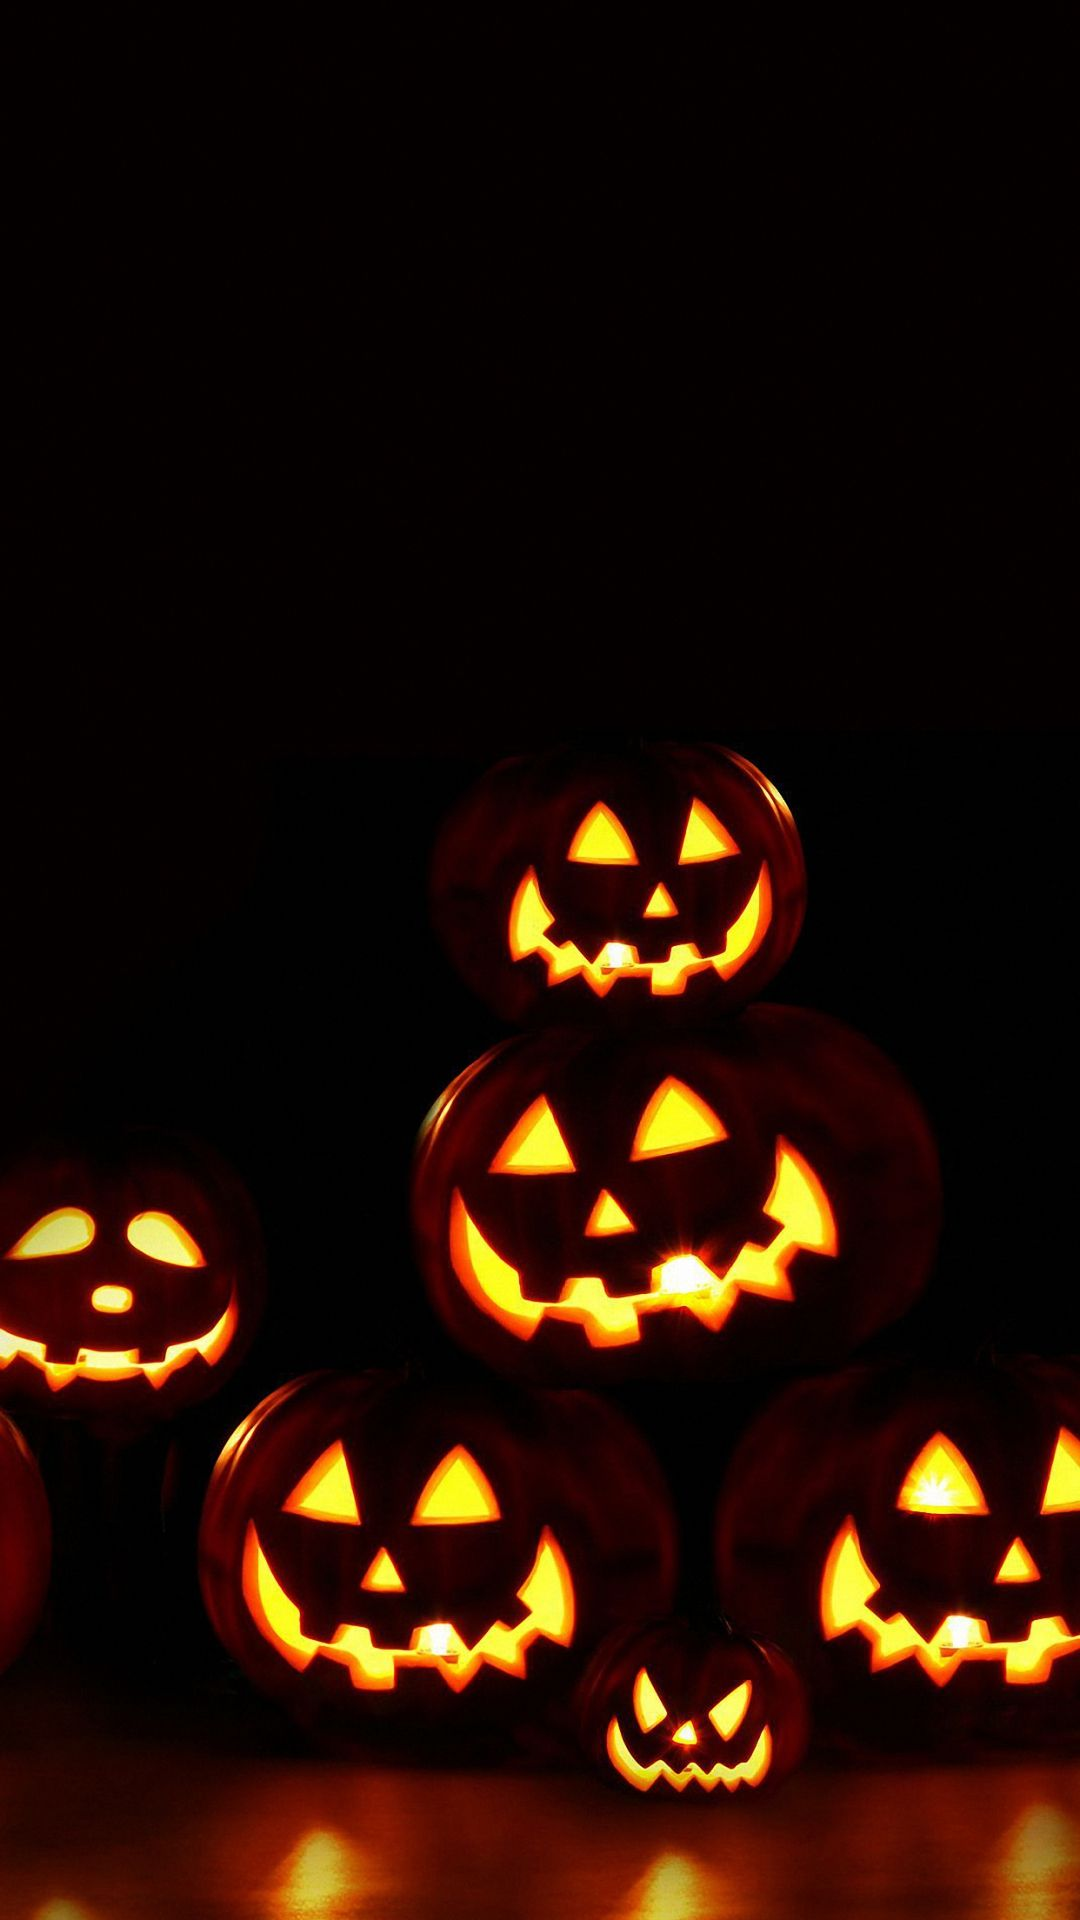 Halloween Pumpkin Wallpaper Hd.Hd Halloween Pumpkin Lights Wallpapers Holiday Mobile